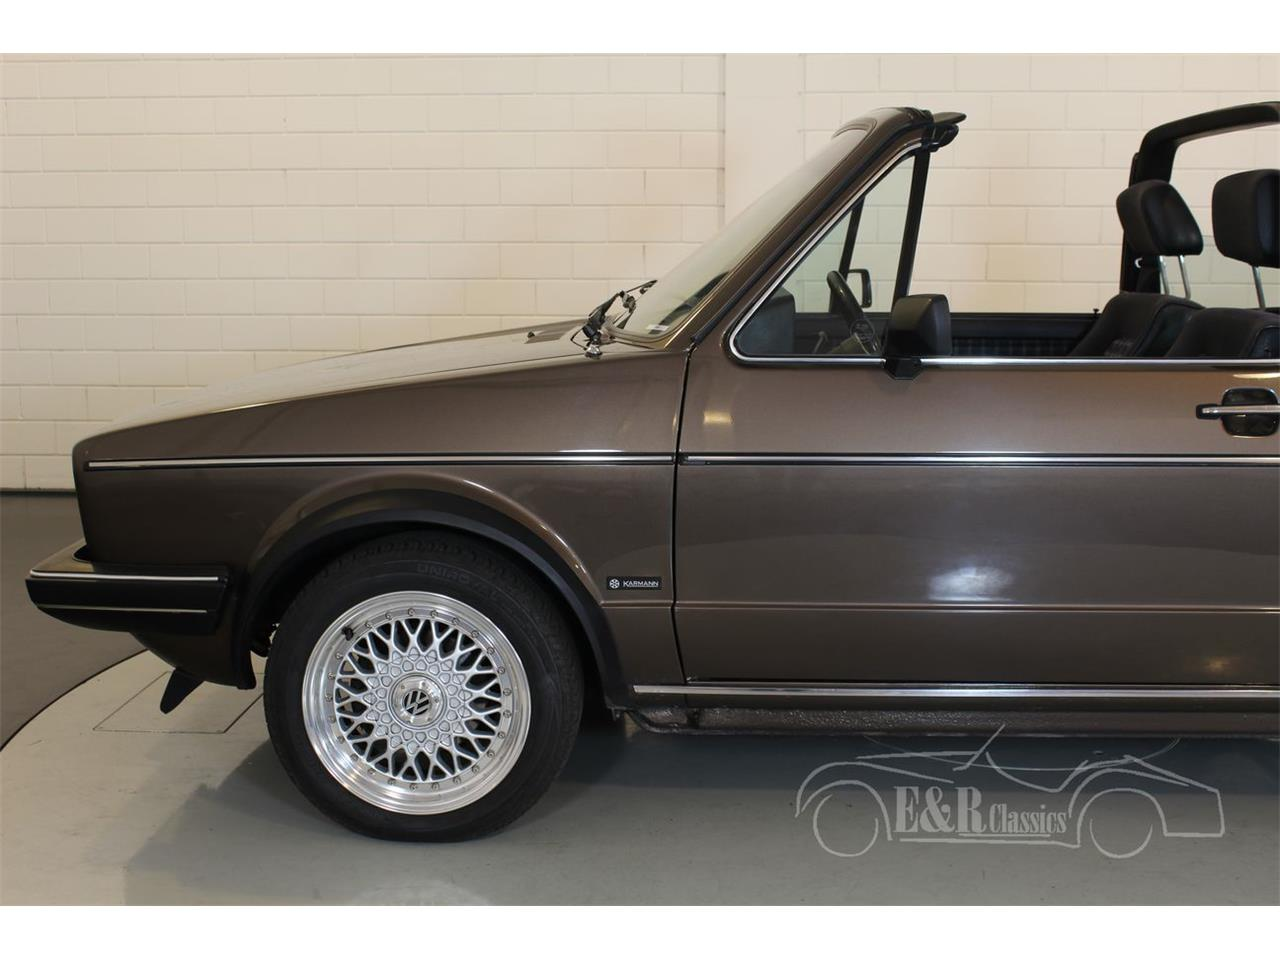 Large Picture of '84 Volkswagen Golf located in - Keine Angabe - - $19,100.00 - PH4B